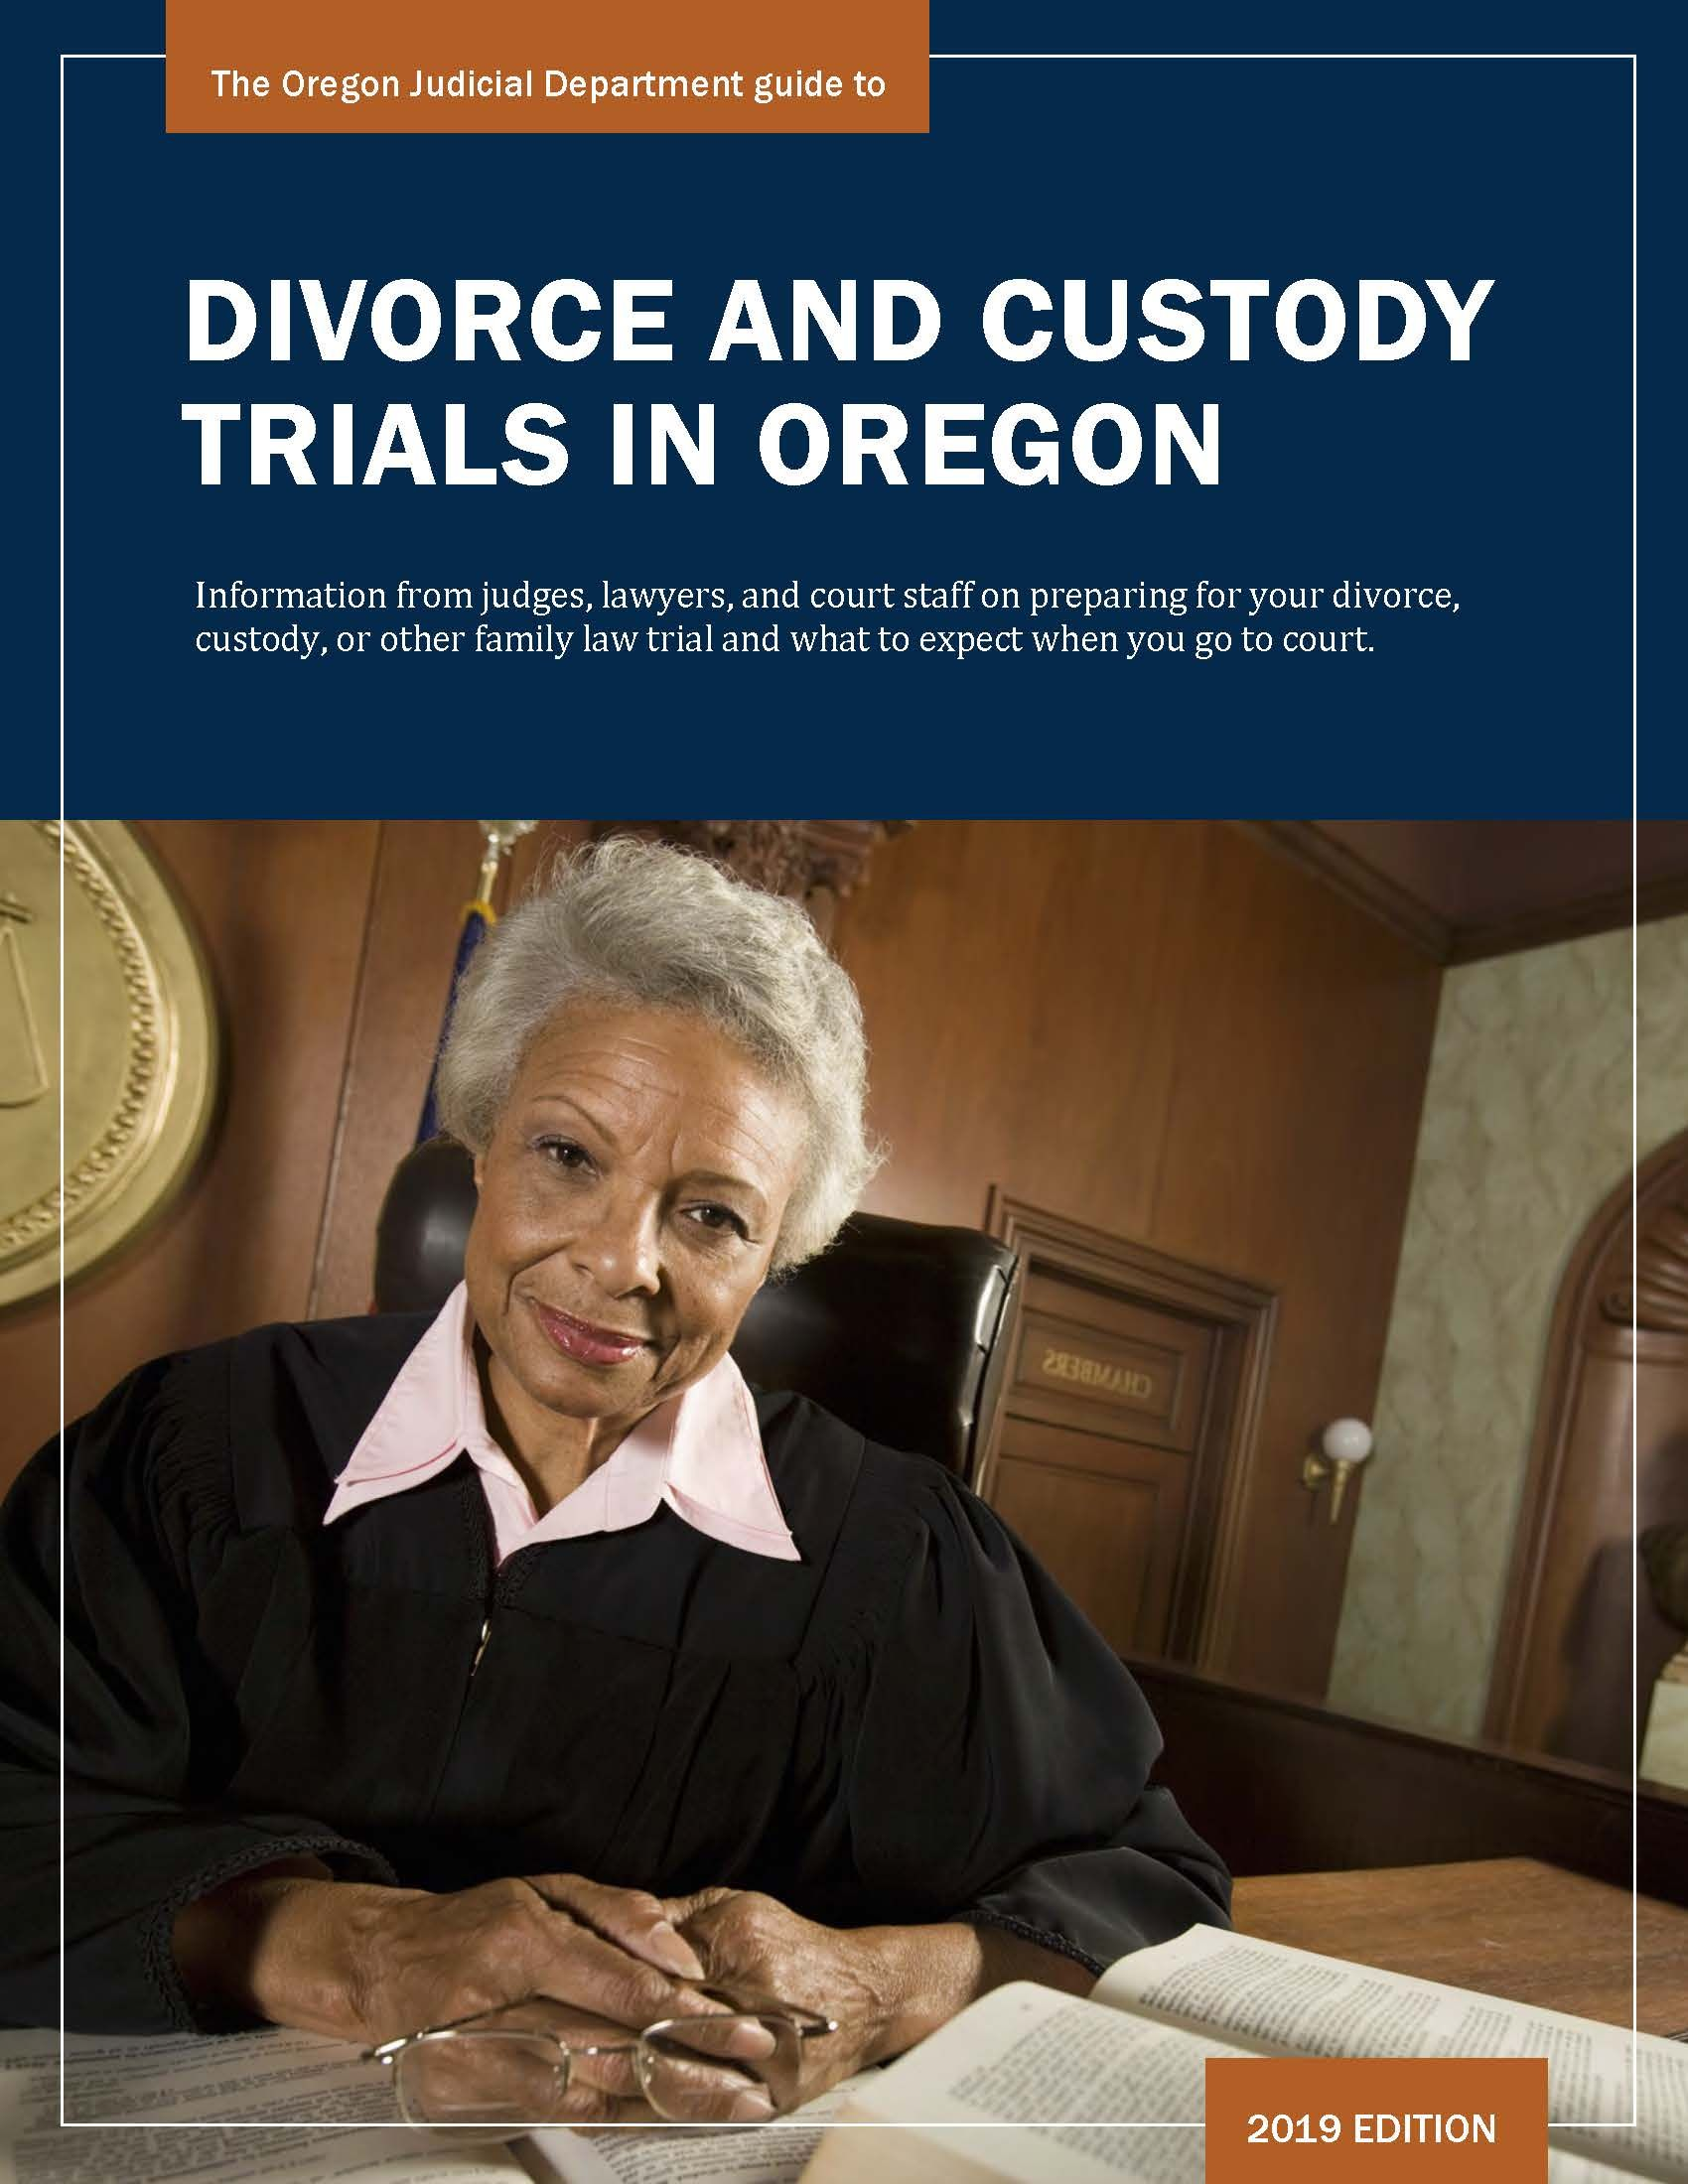 Pin on Oregon Government Publications